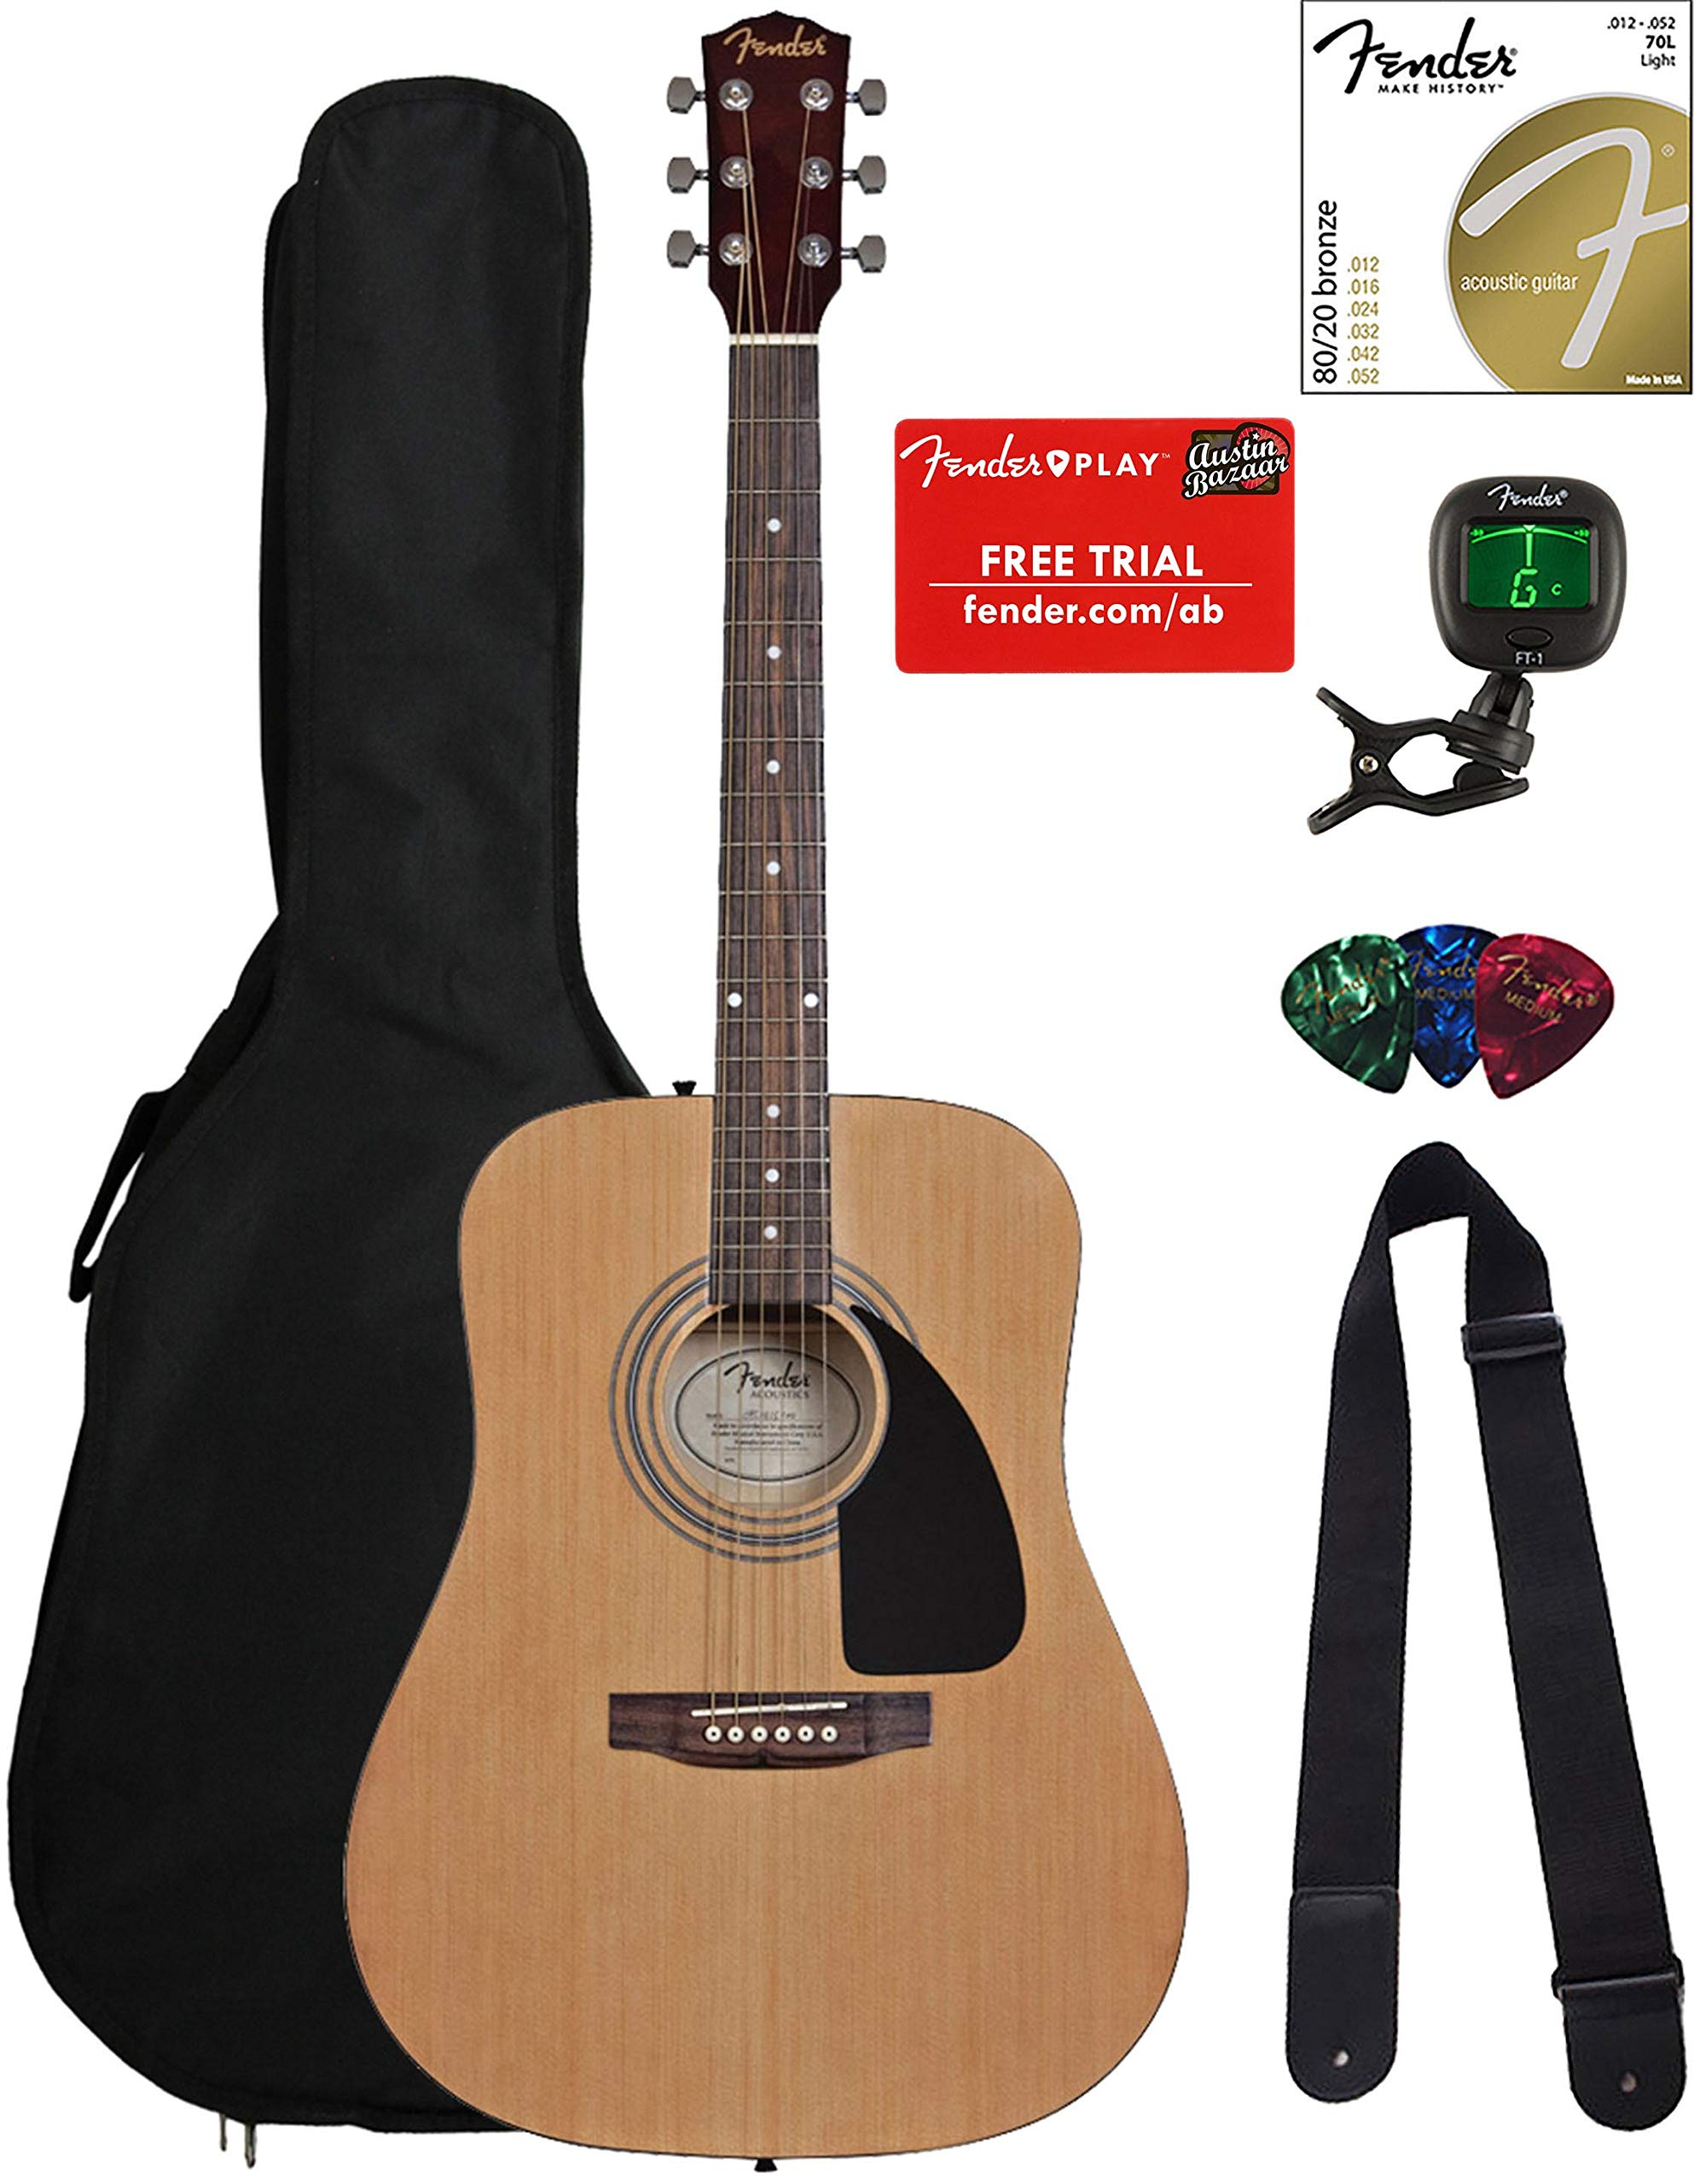 Fender FA-100 Dreadnought Acoustic Guitar - Natural Bundle with Gig Bag, Tuner, Strings, Strap, and Picks by Fender